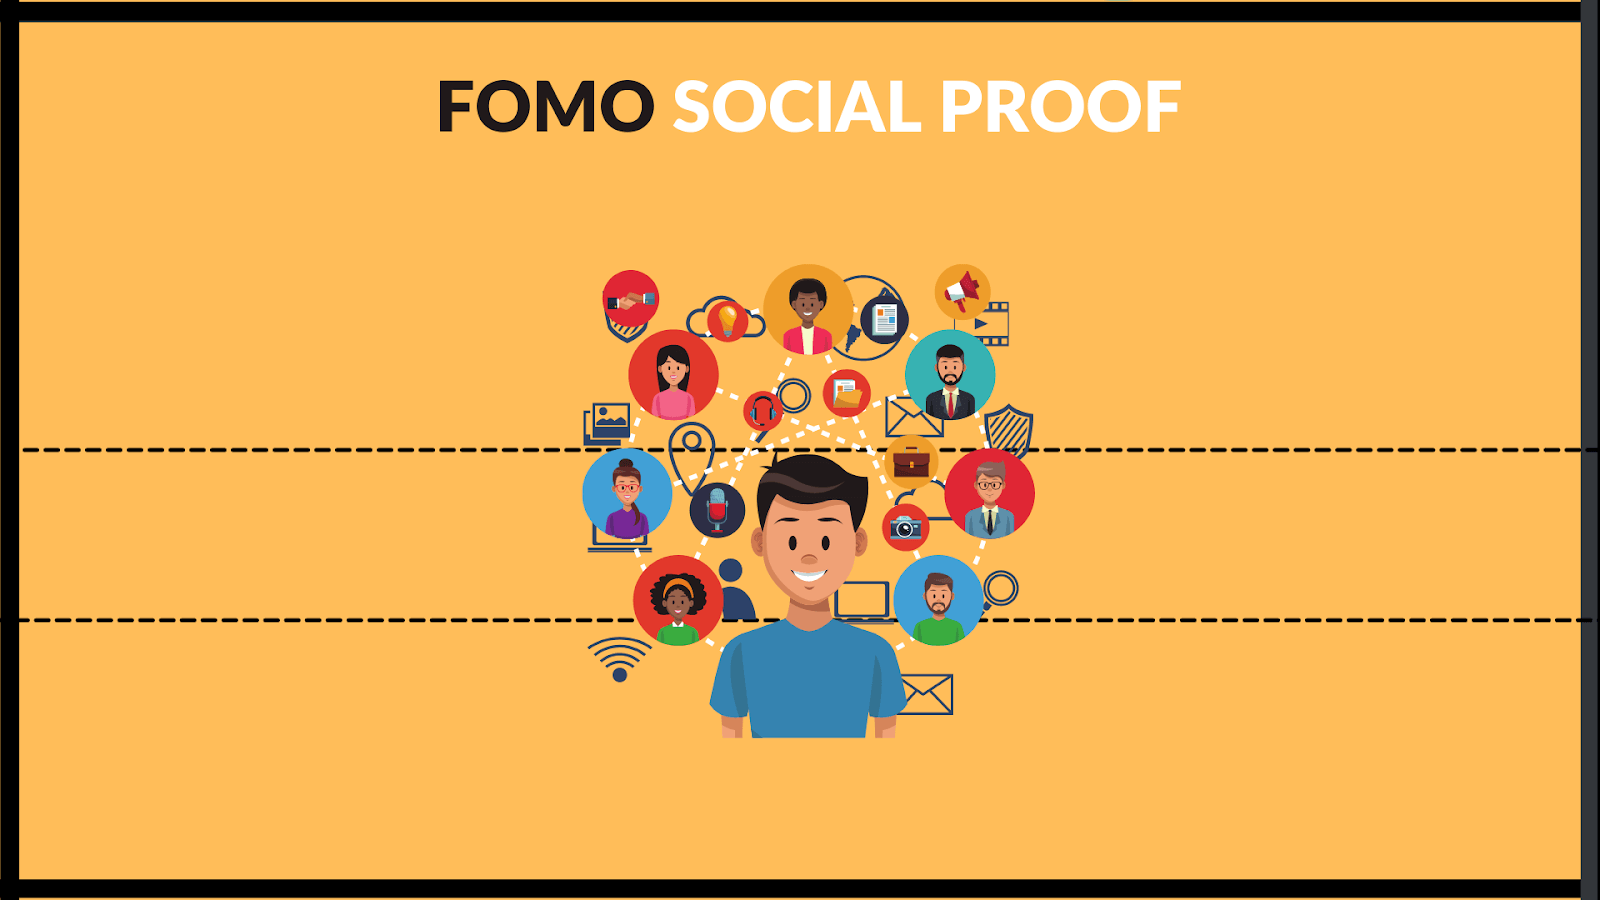 Add social proof as a FOMO to your marketing or website